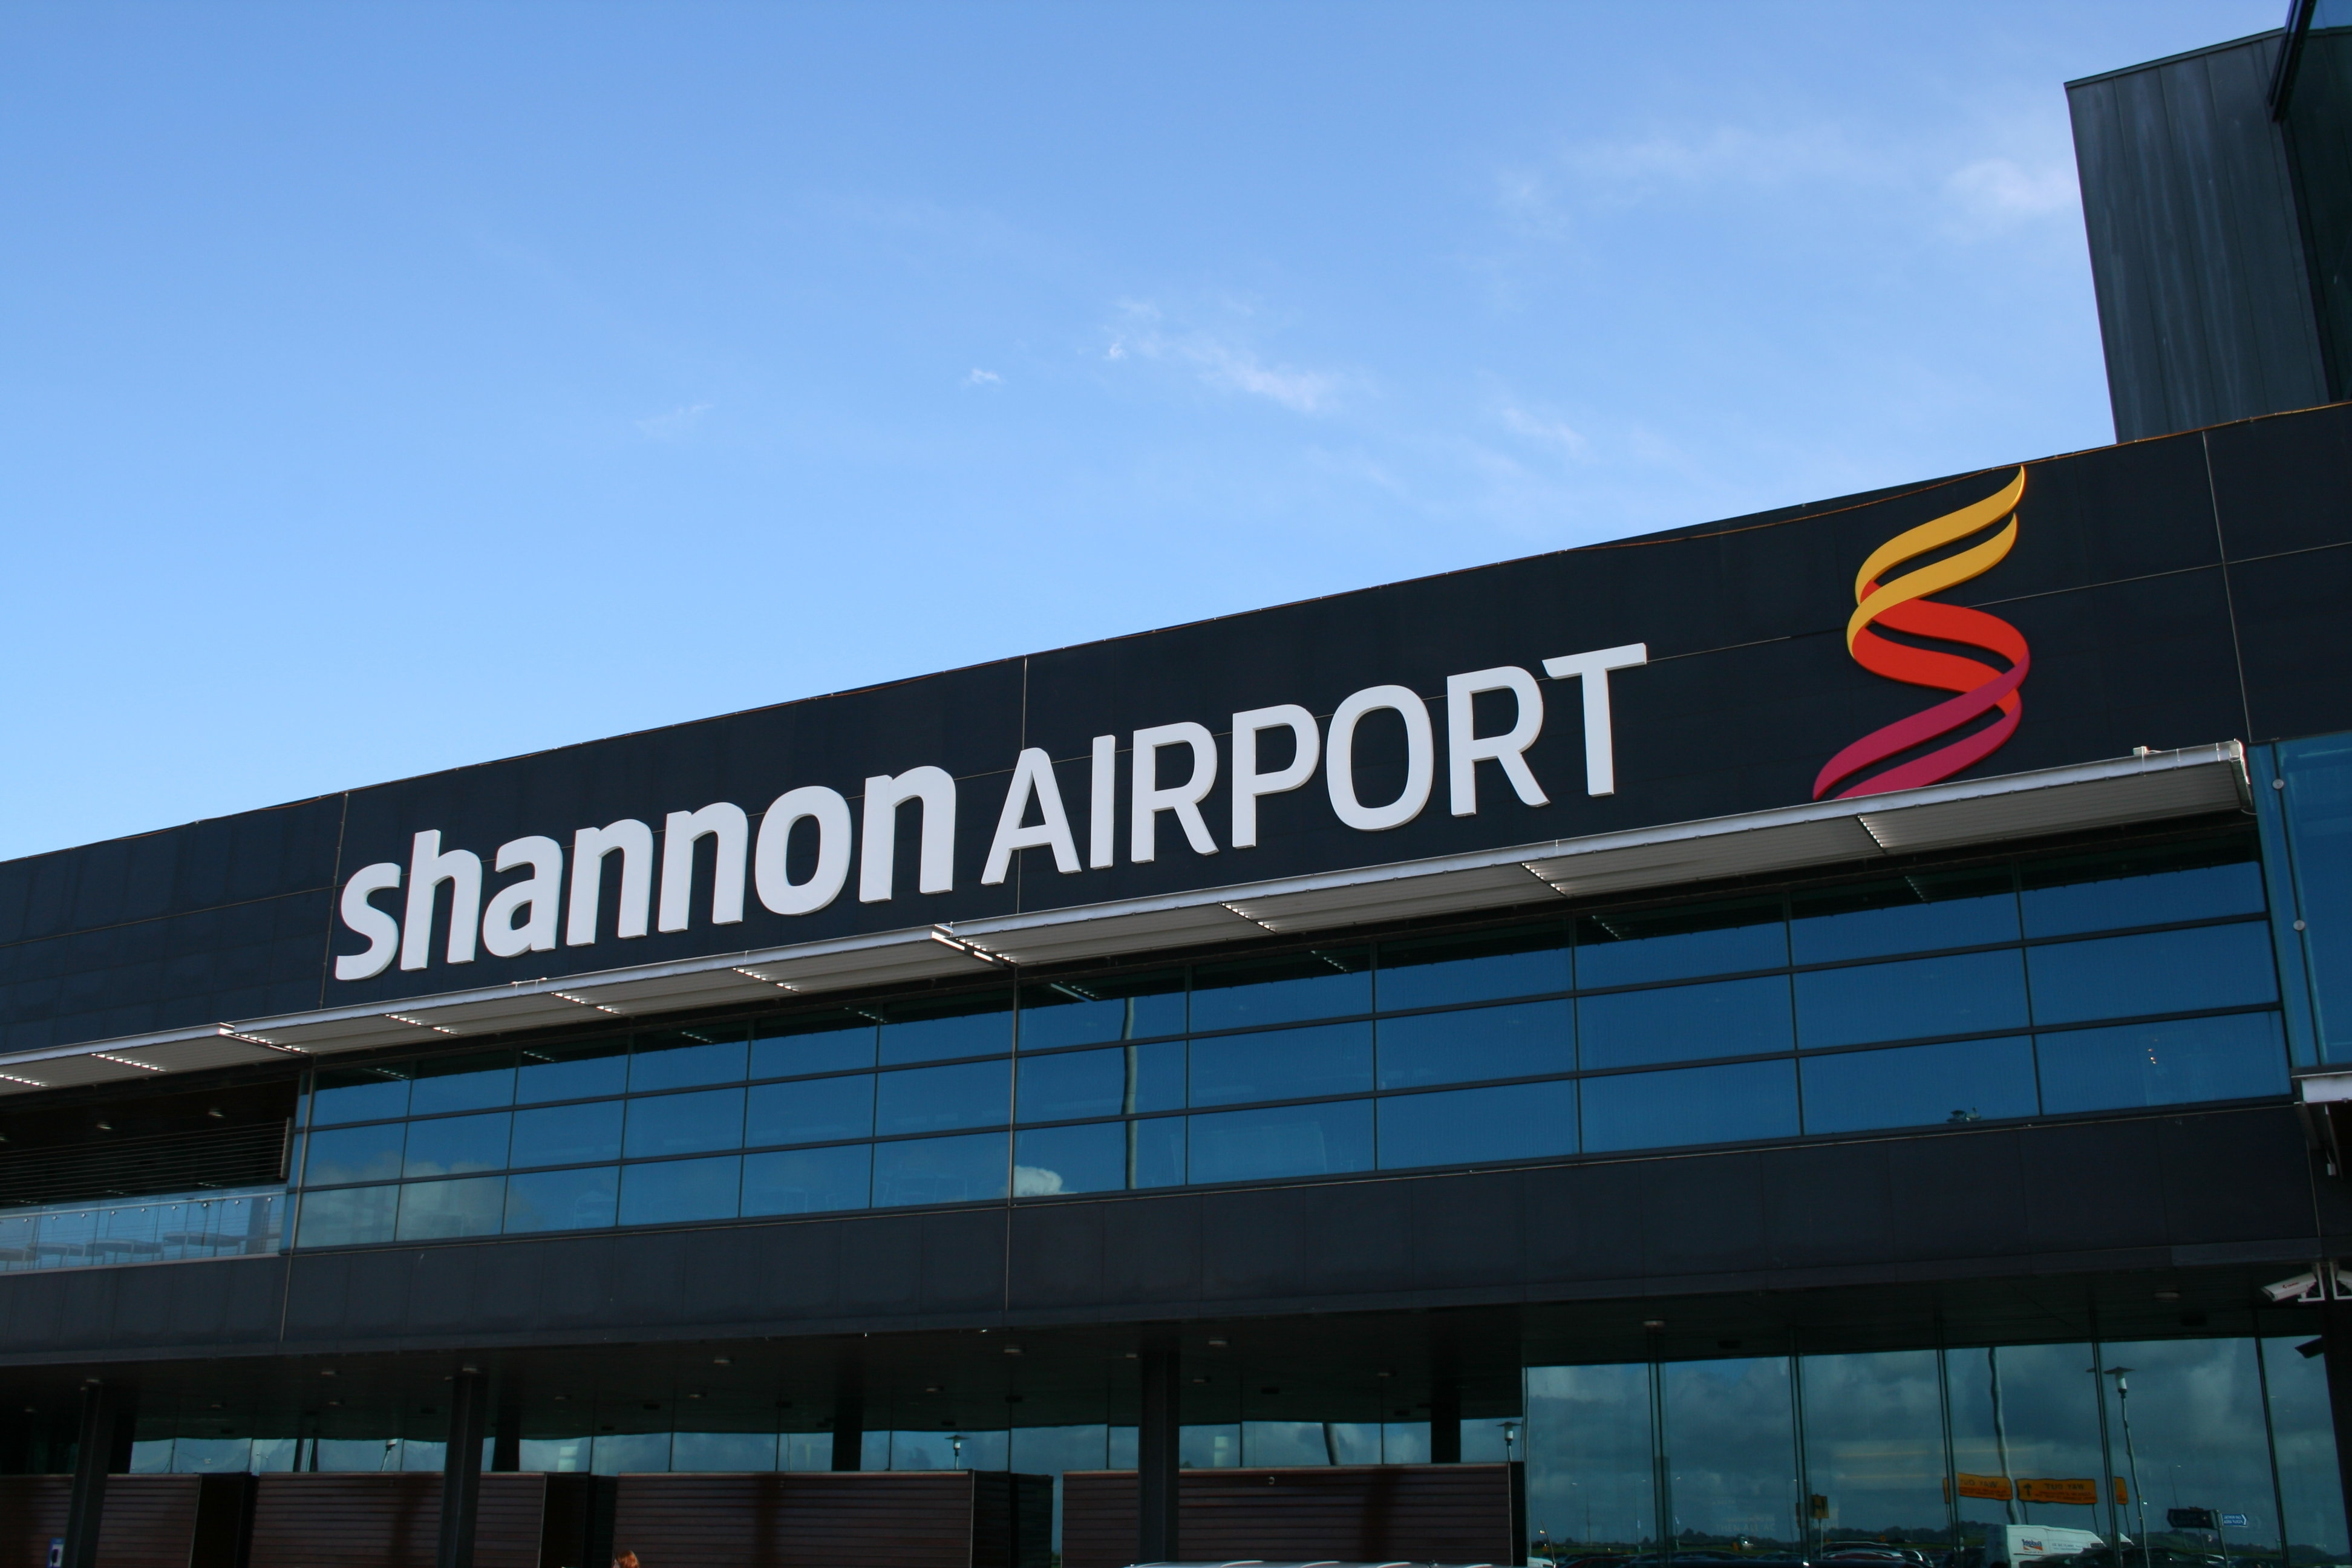 Shannon Group Welcomes €6.1m Government Grant for Shannon Airport CapEx Project Image